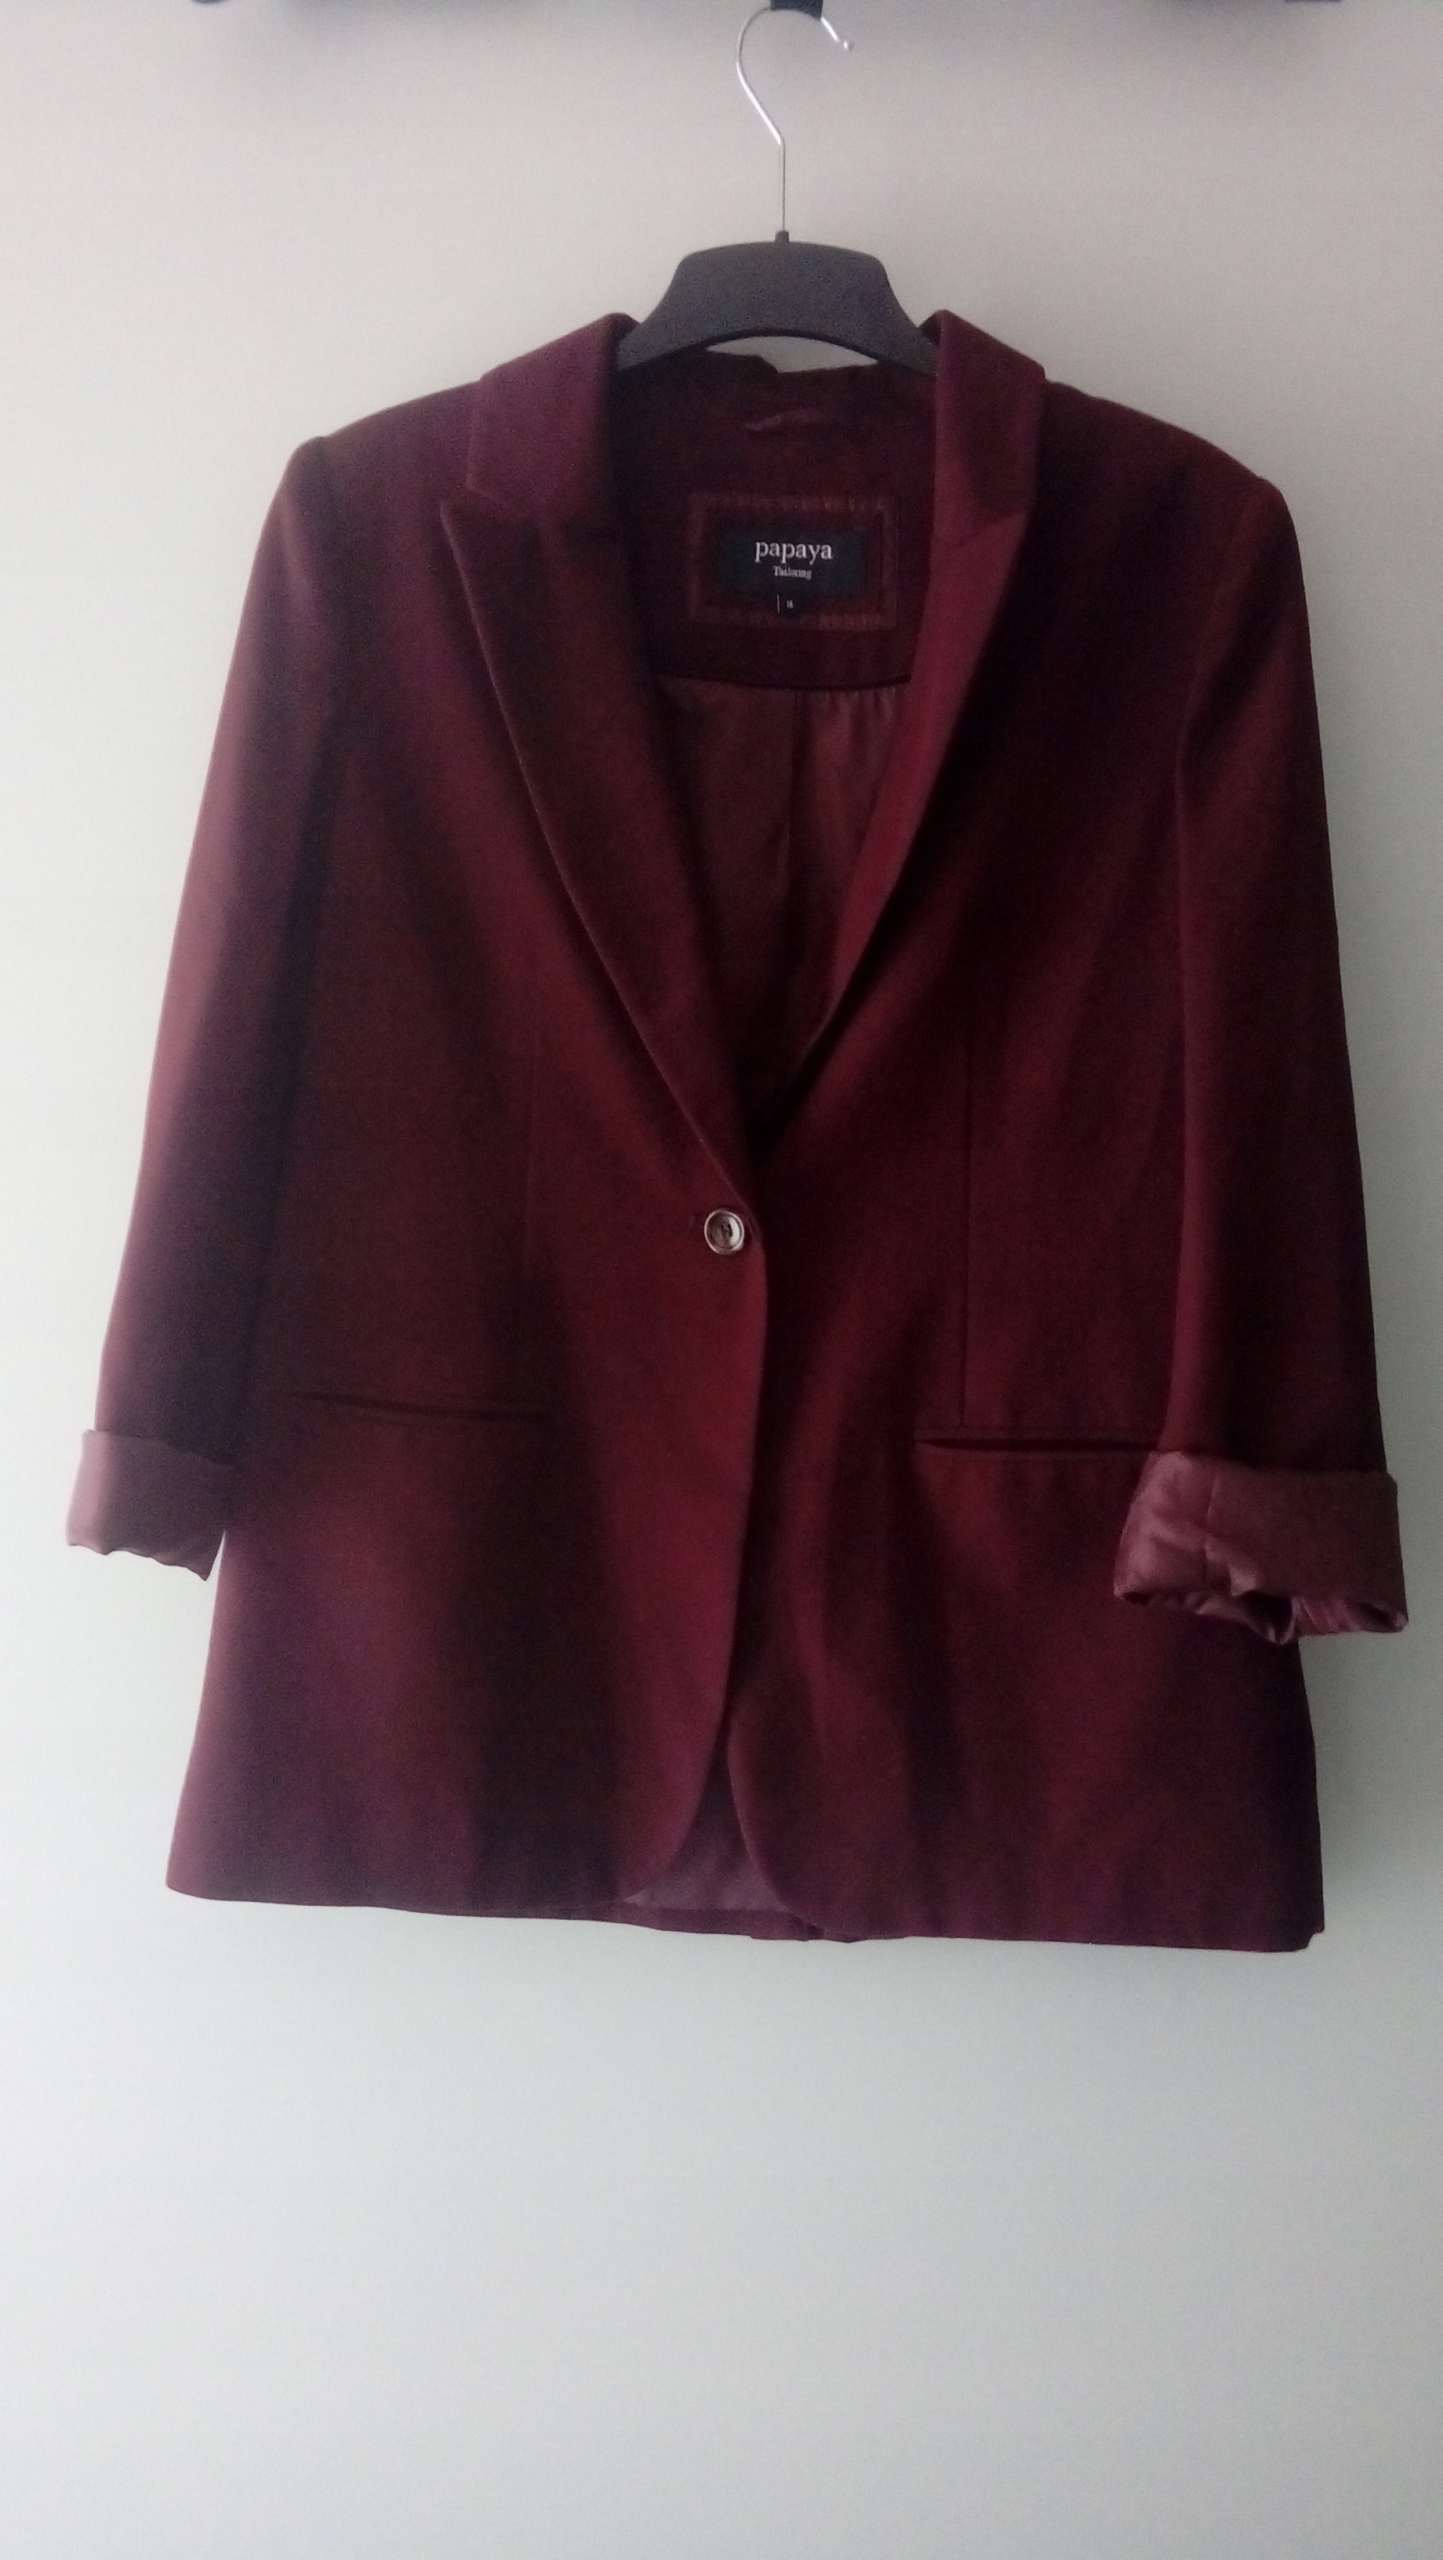 Marynarka Papya XL/XXL bordo burgundowa